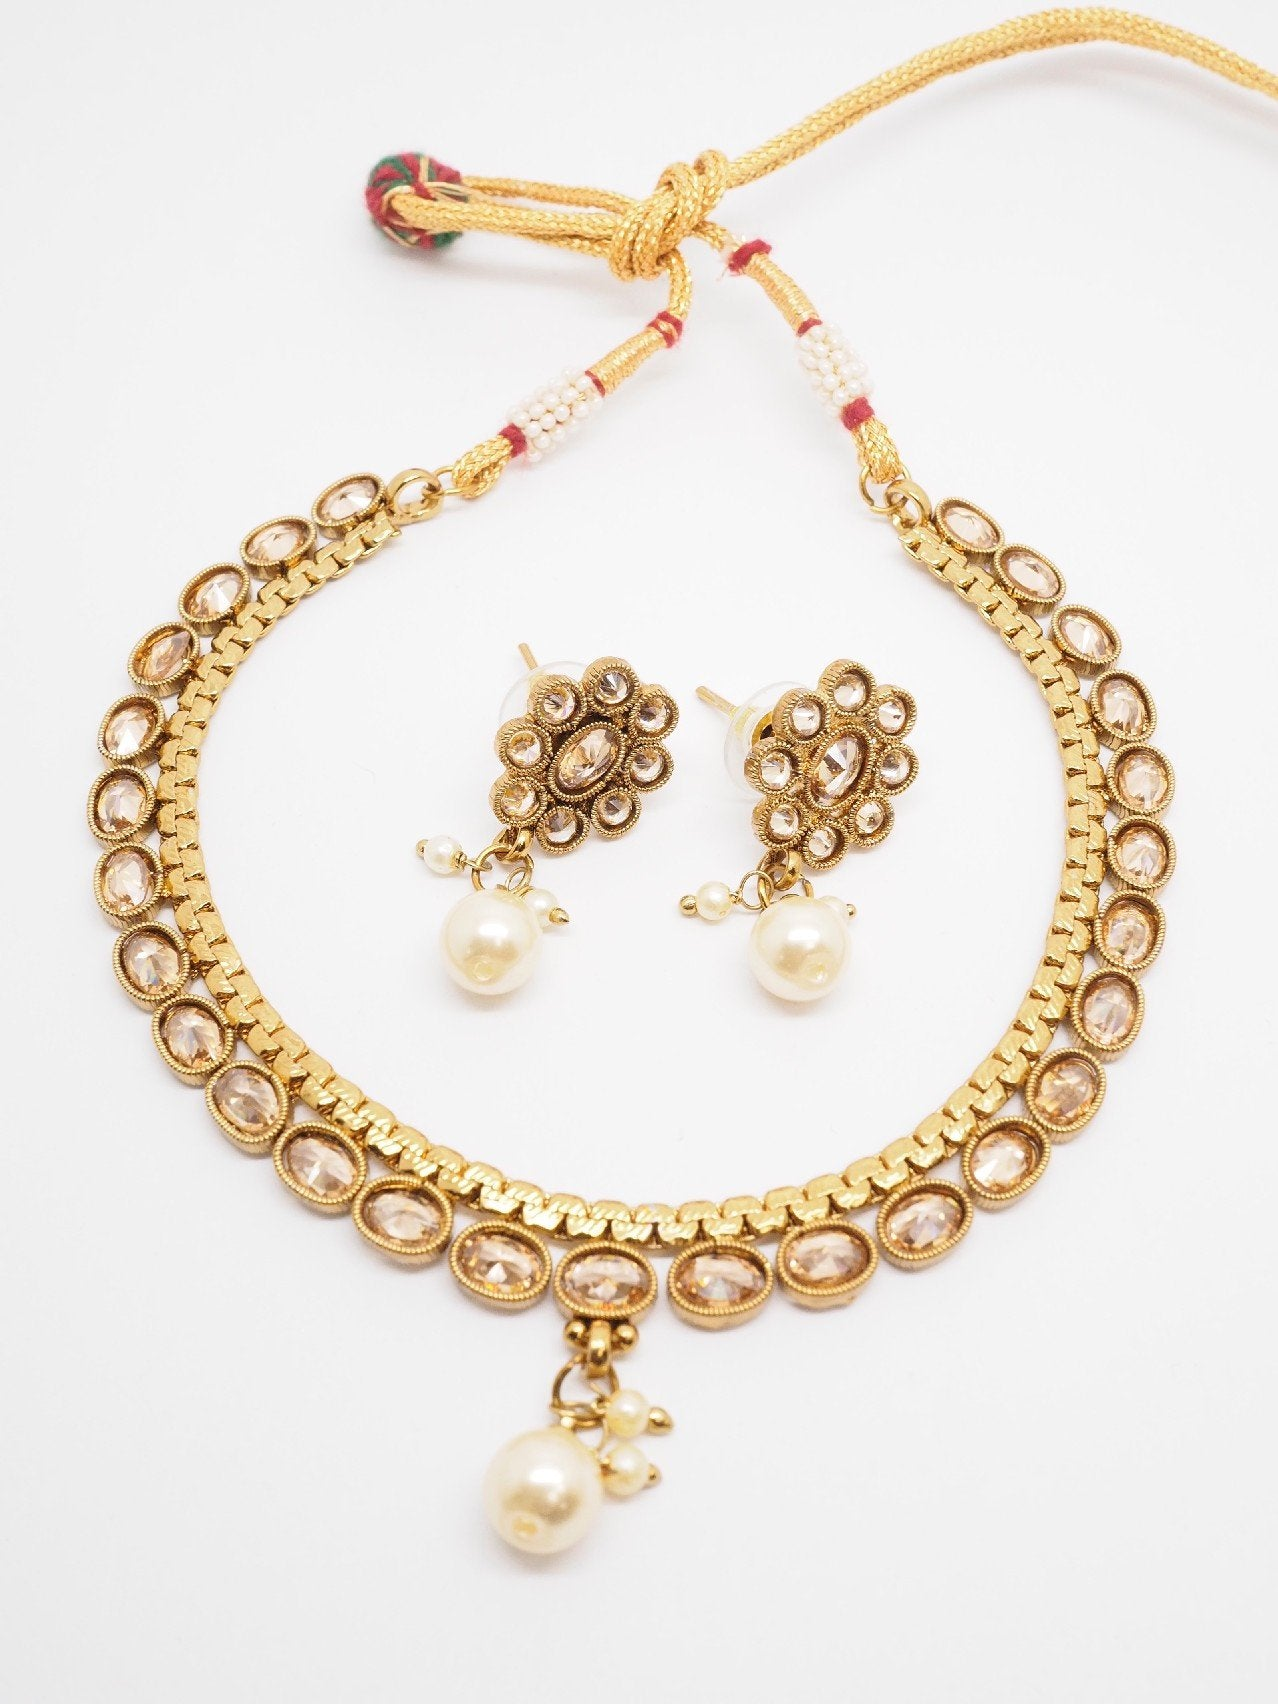 Choker necklace & Earrings set - Bollywood - Weddings - MNA244 P0919